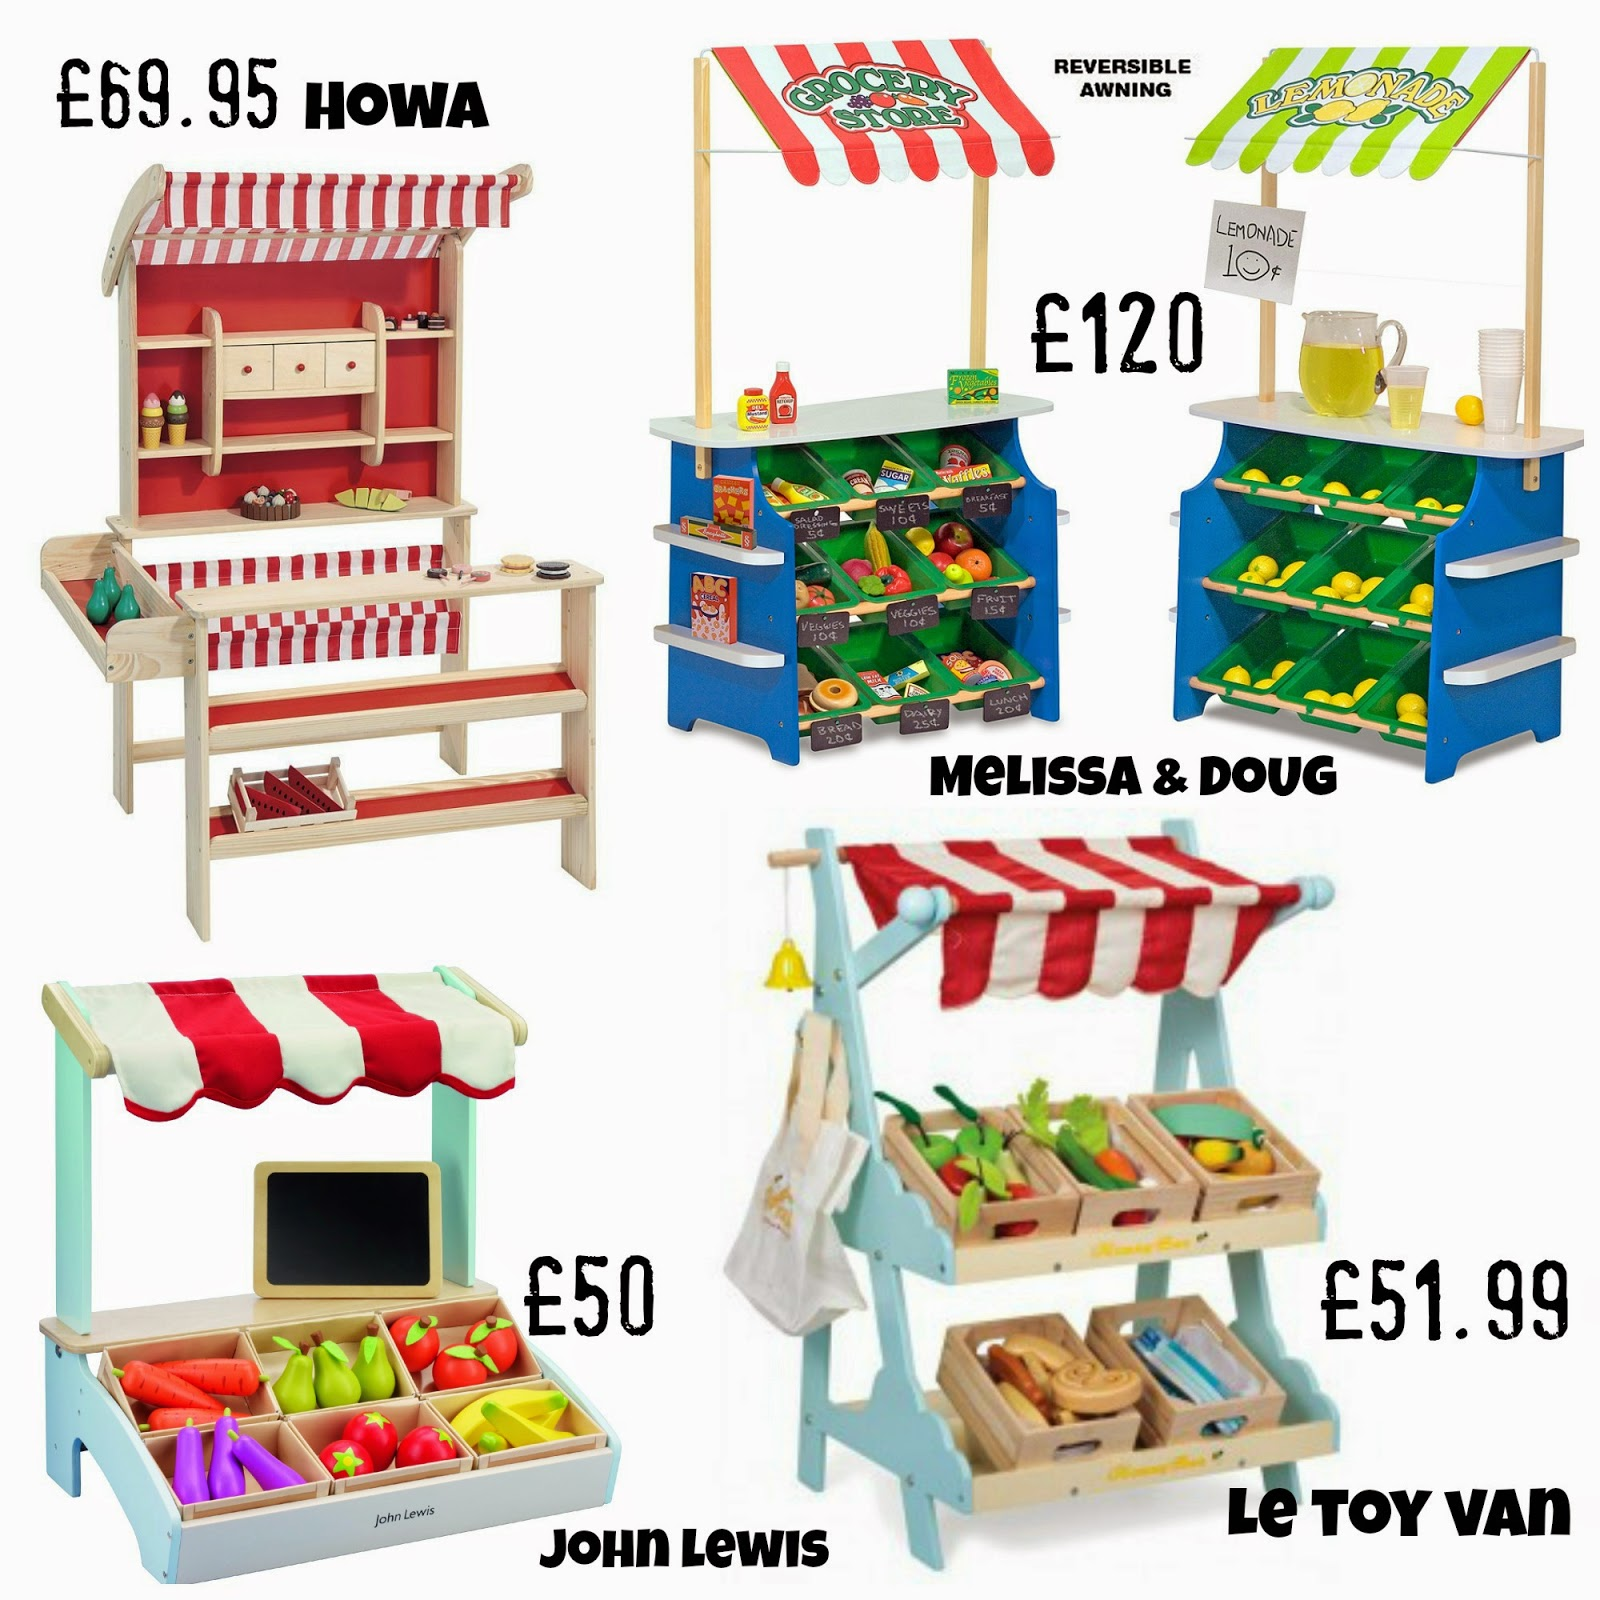 Chic wooden market stalls for imaginative play - and lots of accessories too!   wooden markets and shops   wooden market stalls   role play   play shops   early learning centre john lewis   le toy van   honey bake maker   hows   melissa and doug   play shopping   wooden food   wooden shopping times   shopping trolley   play shopping baskets   little street   shop   imaginative play   wooden toy shop   wooden macrons   wooden biscuits   mamasVIB   christmas gifts   shopping ides   kids toys   learning toys   busy bees    market street   kids shopping bags